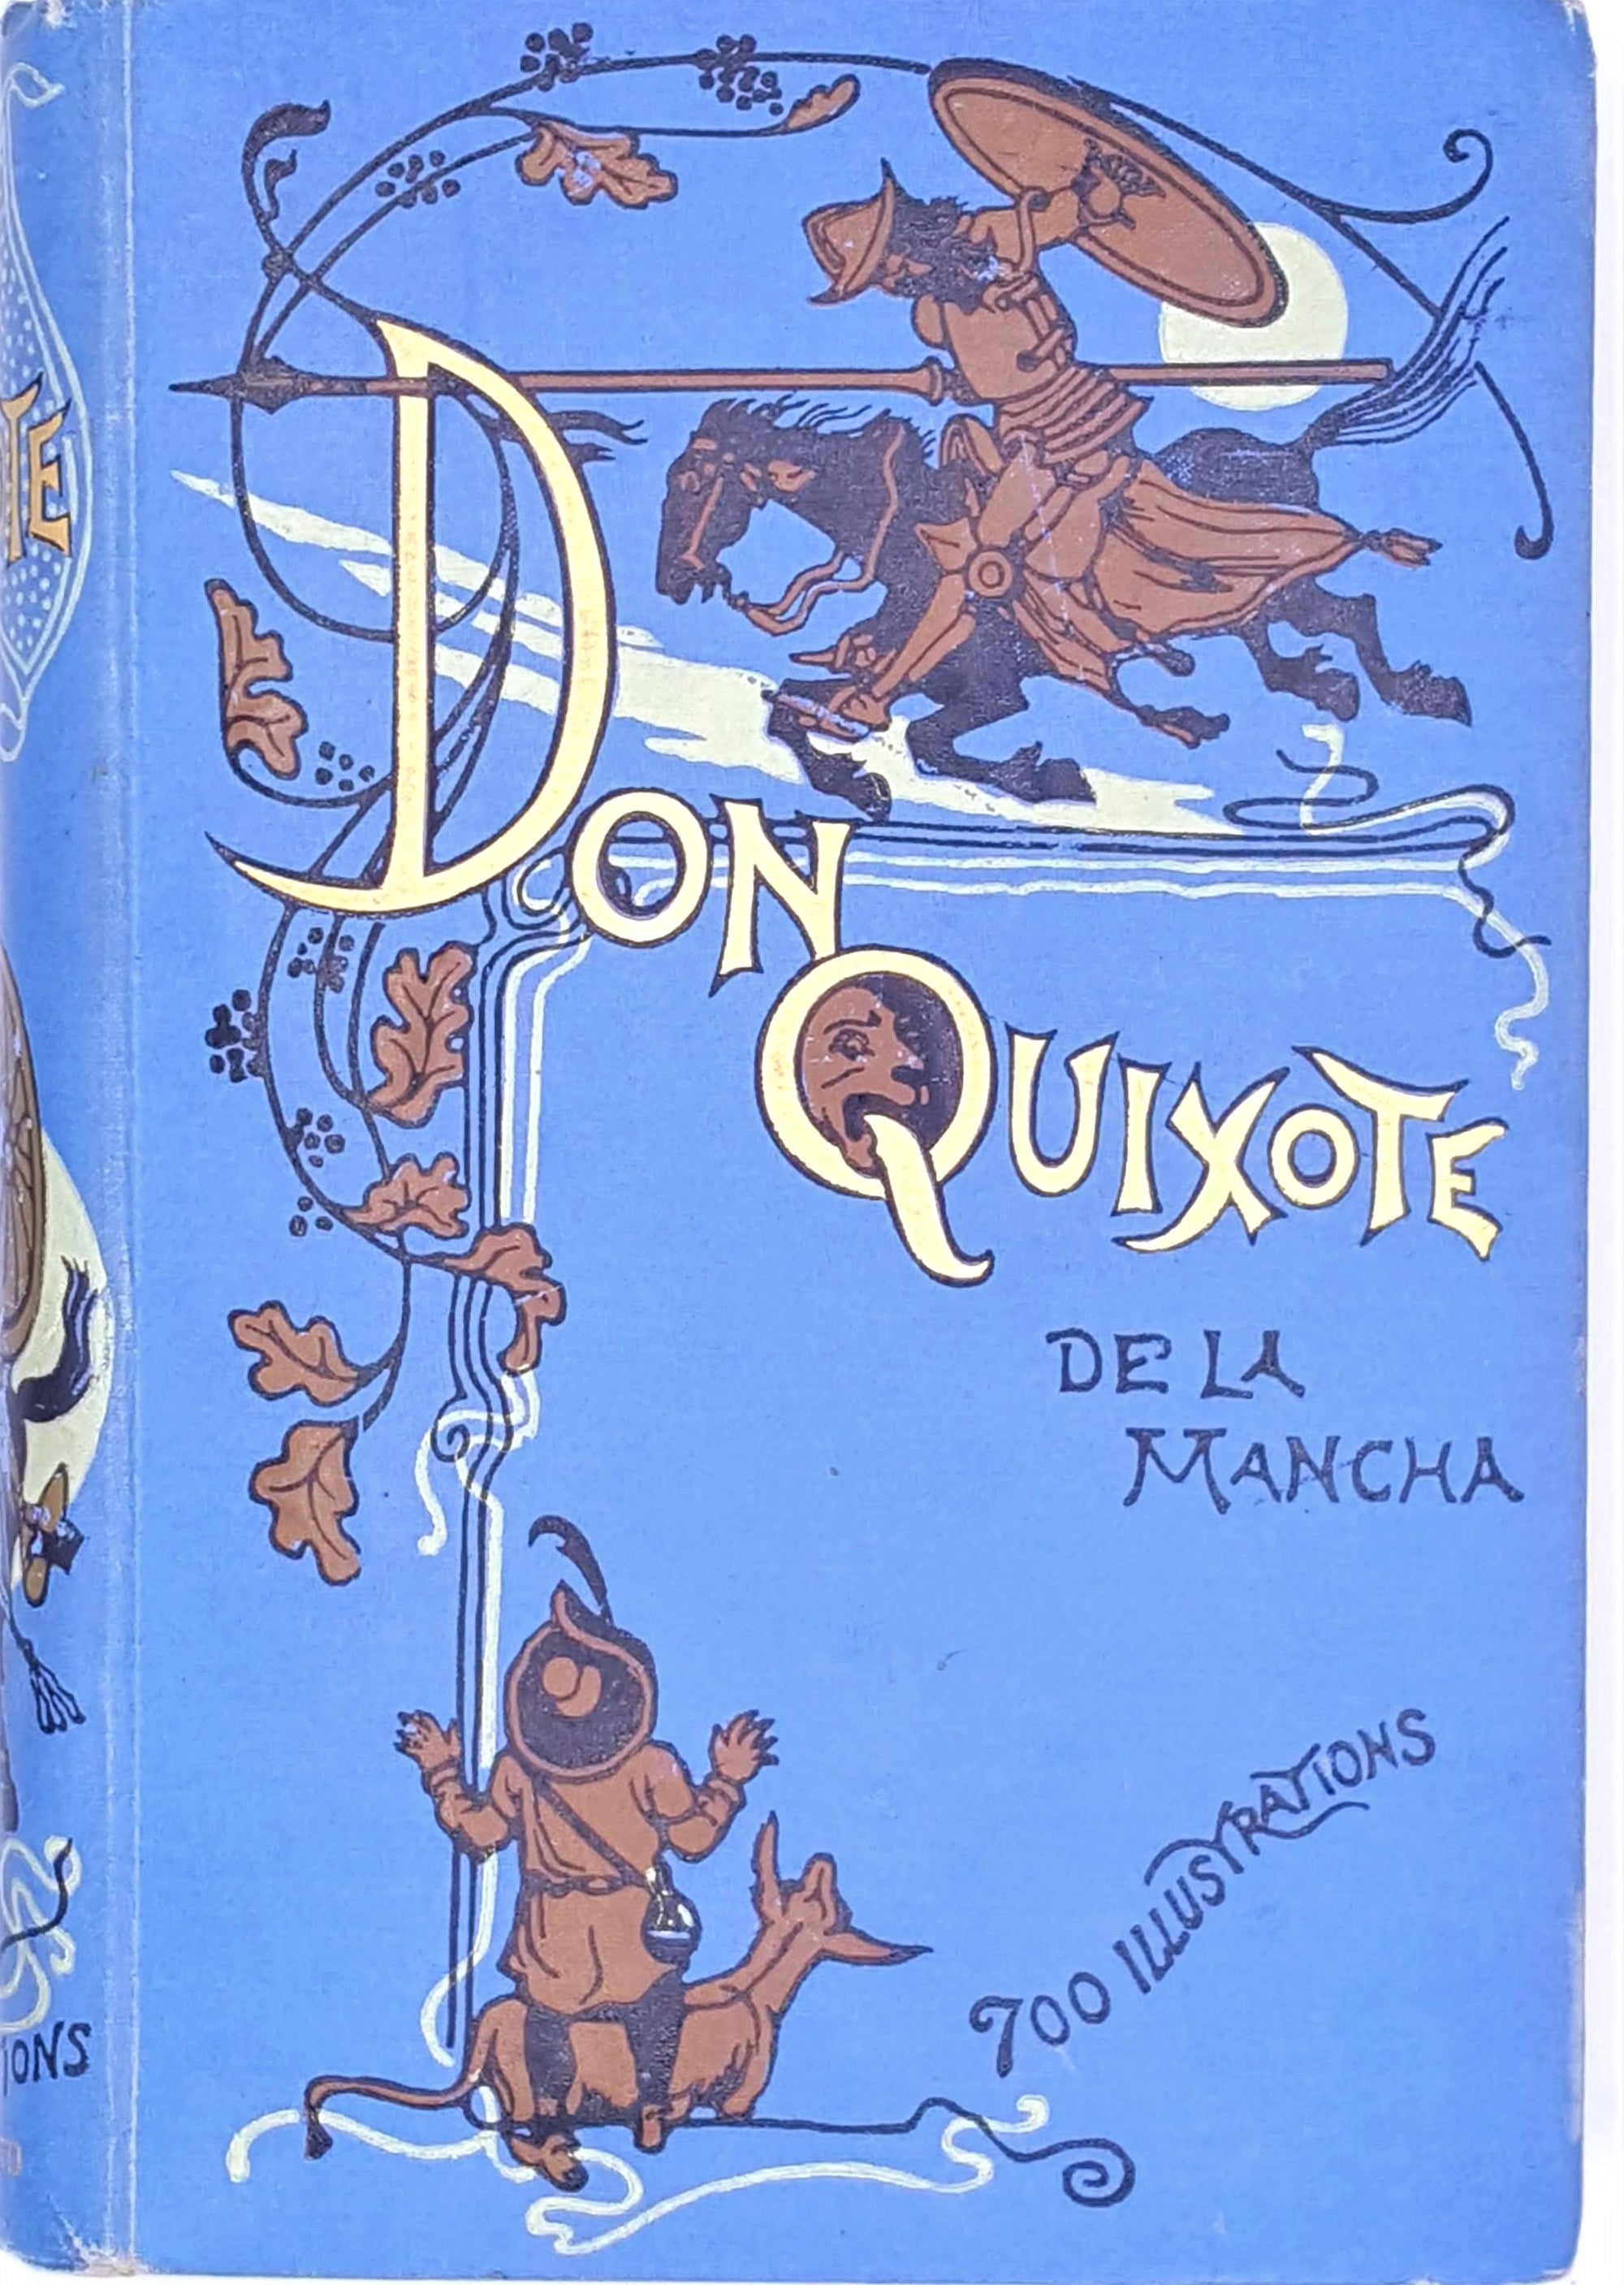 classic-thrift-patterned-don-quixote-1898-illustrated-antique-vintage-cervantes-books-country-house-library-blue-old-decorative-